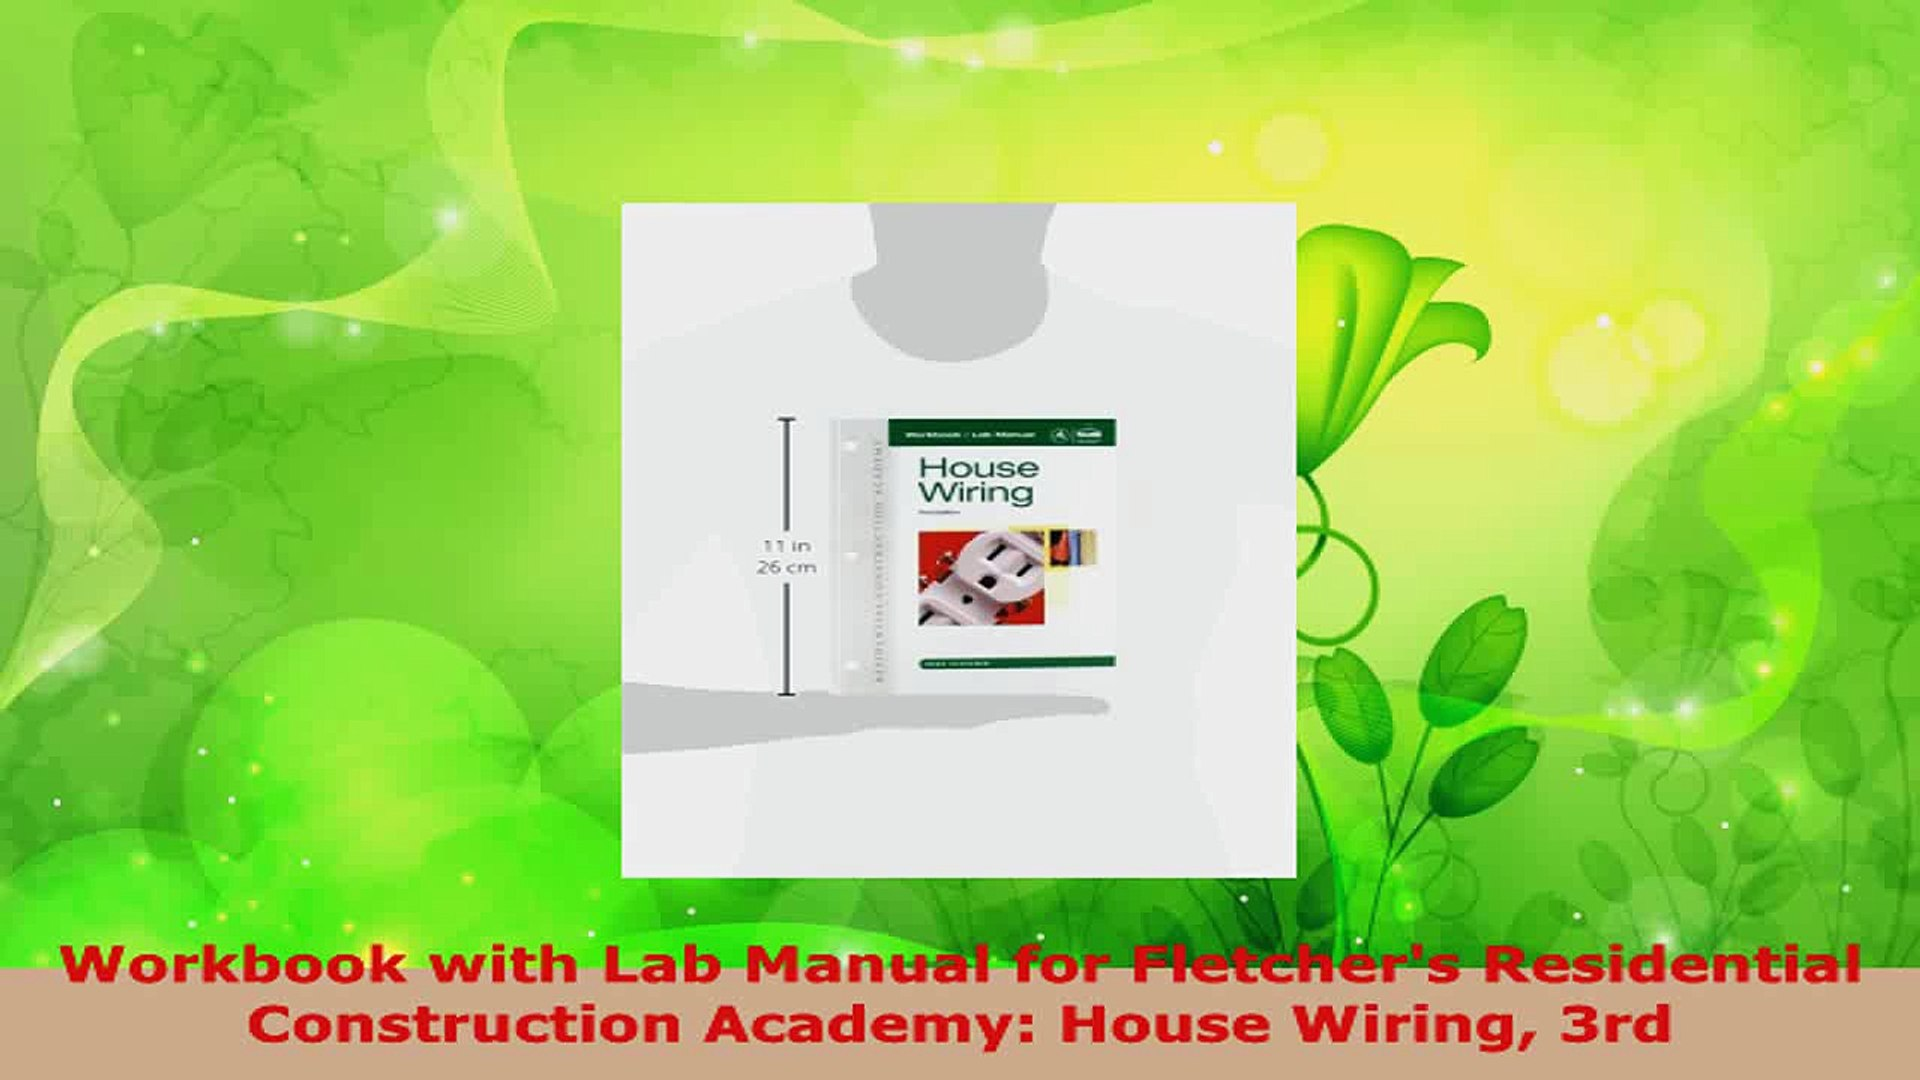 Tells and Shows You How House Wiring Simplified